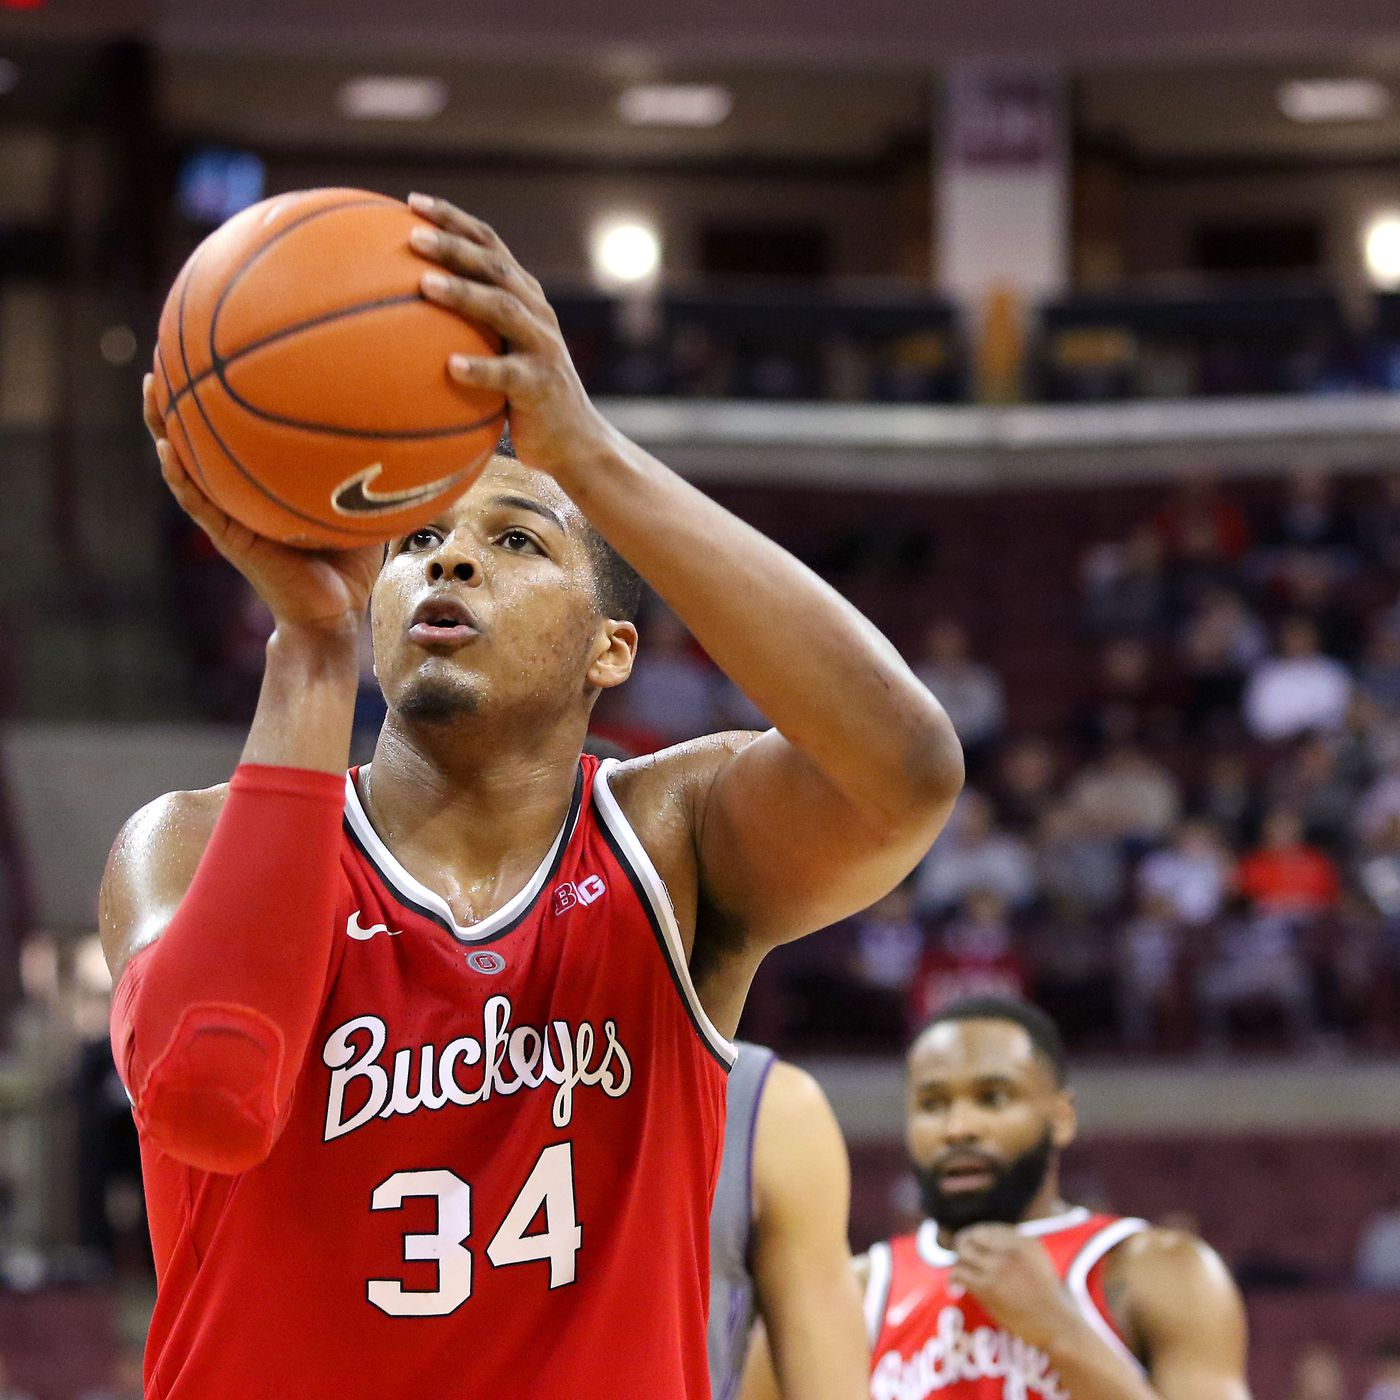 8a4740c23ee Ohio State men s basketball vs Iowa  Game preview